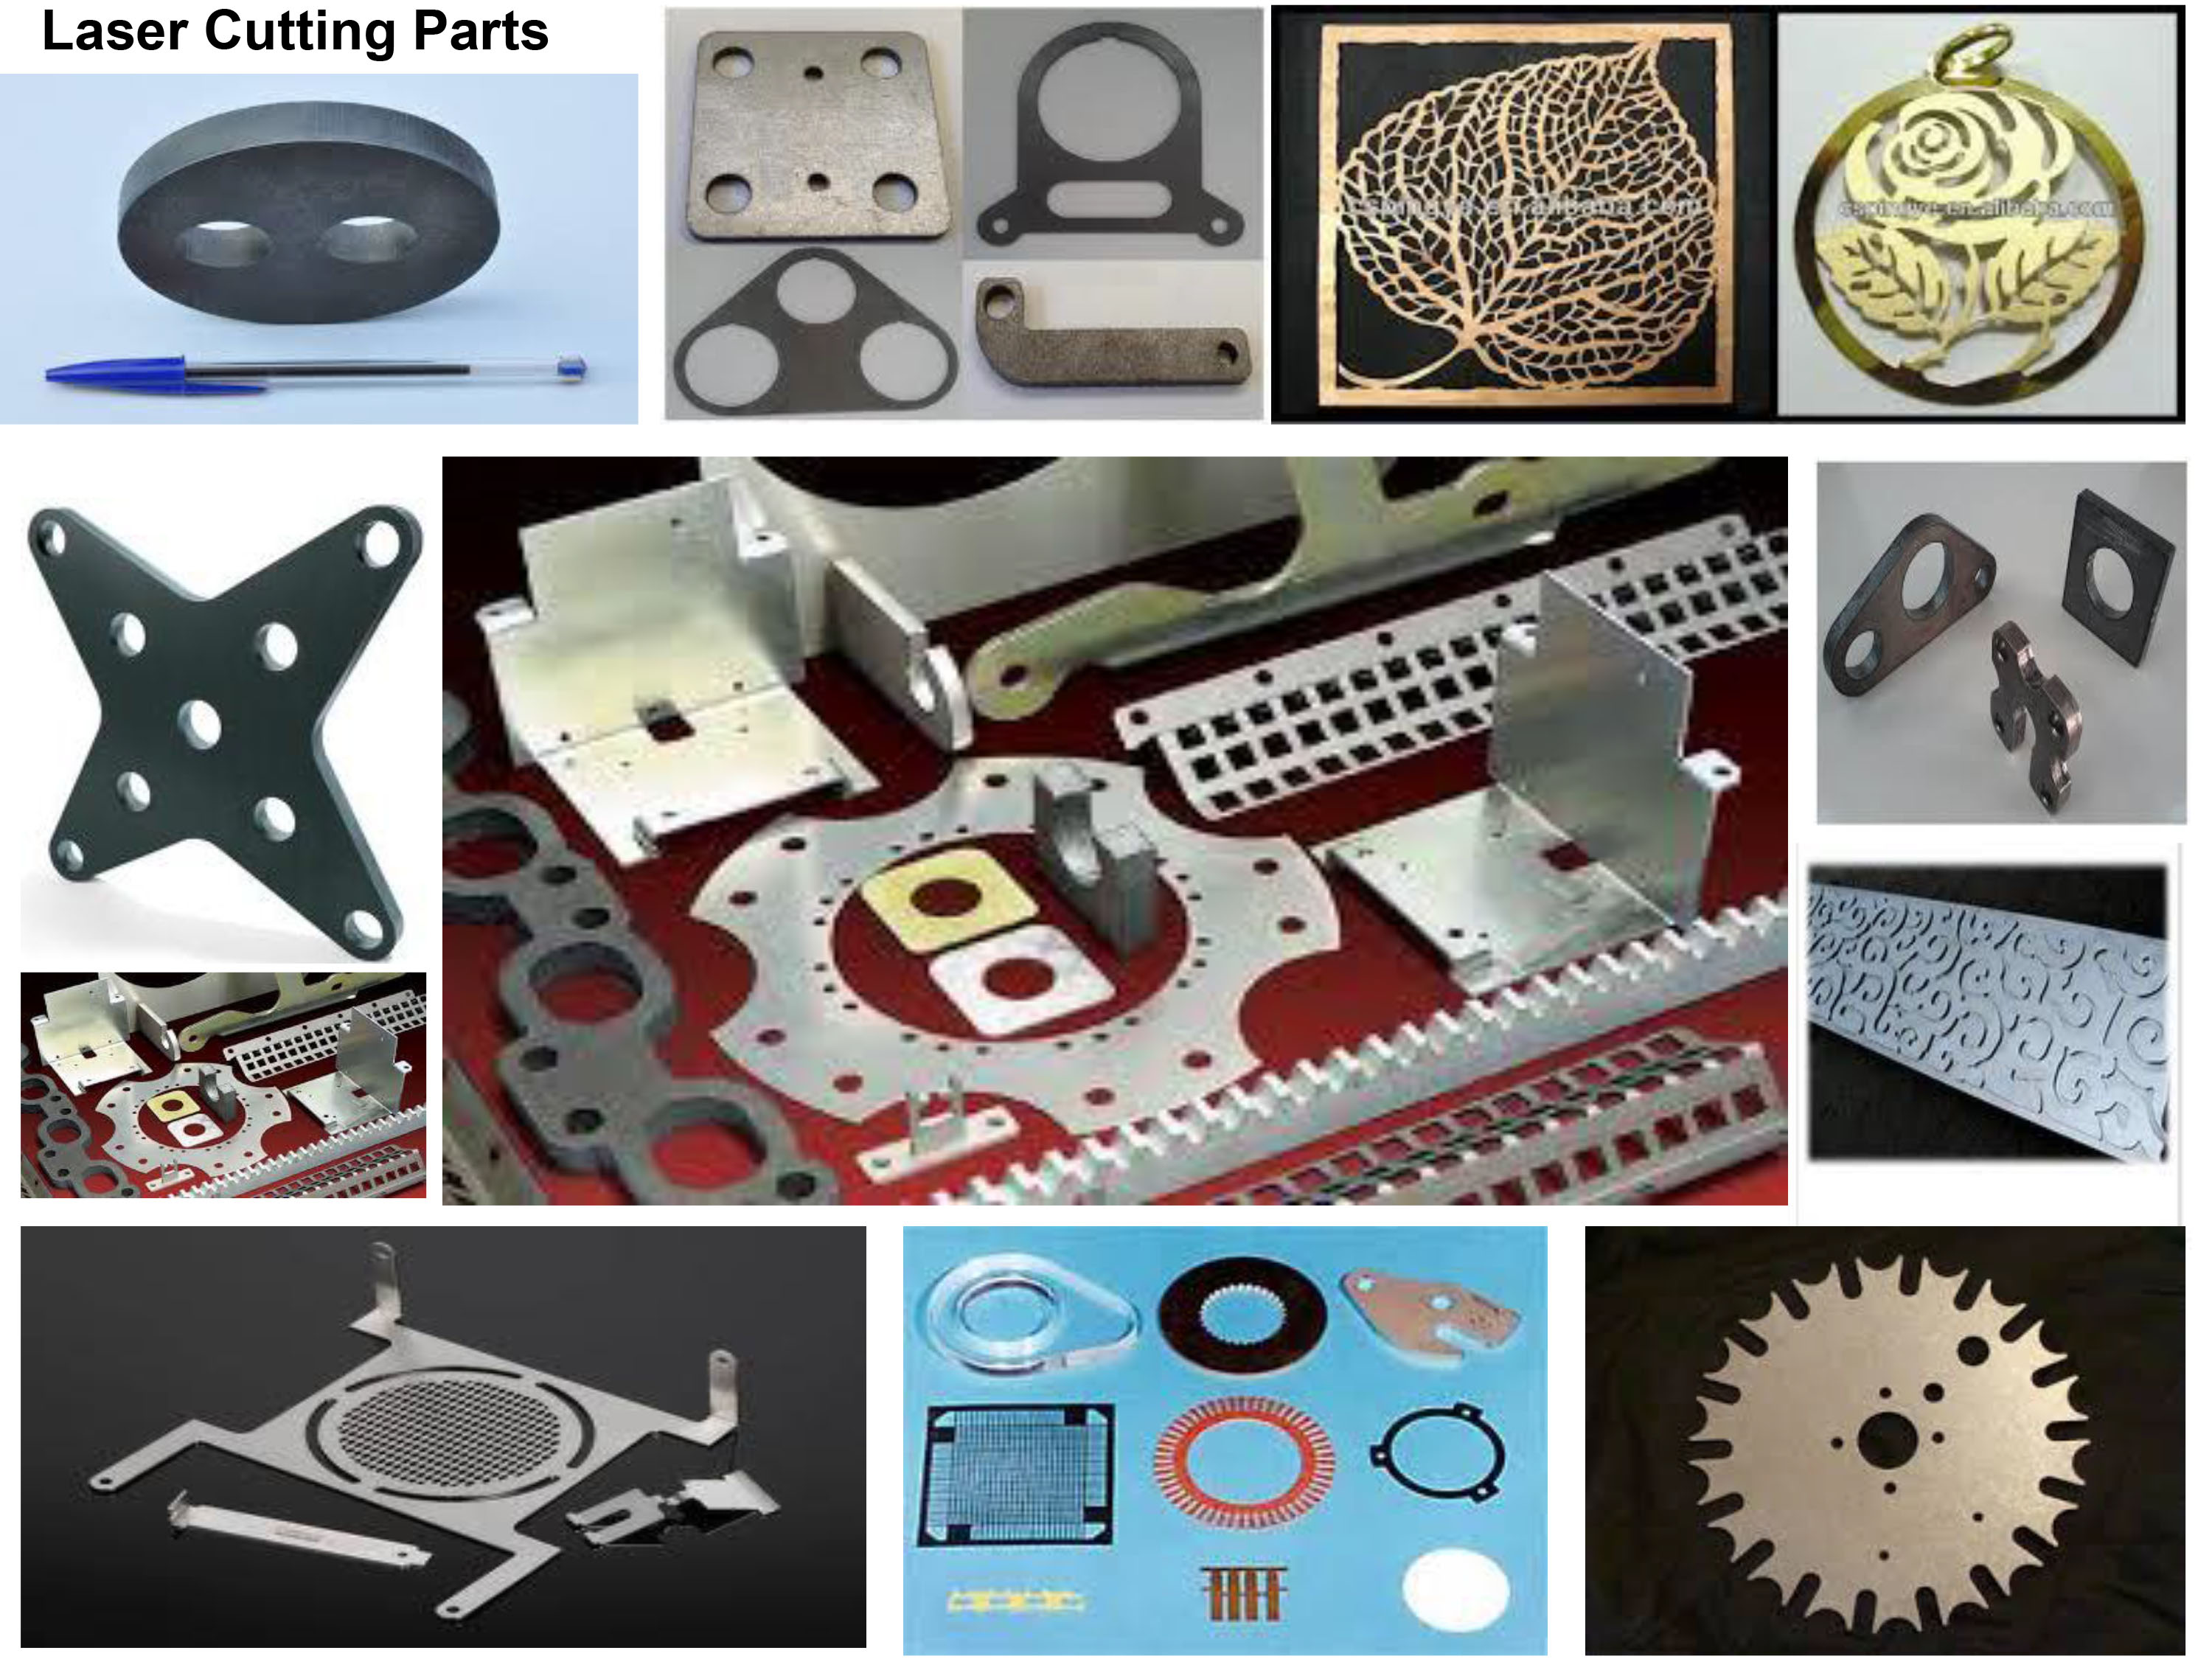 Sheet Metal Laser Cutting in India